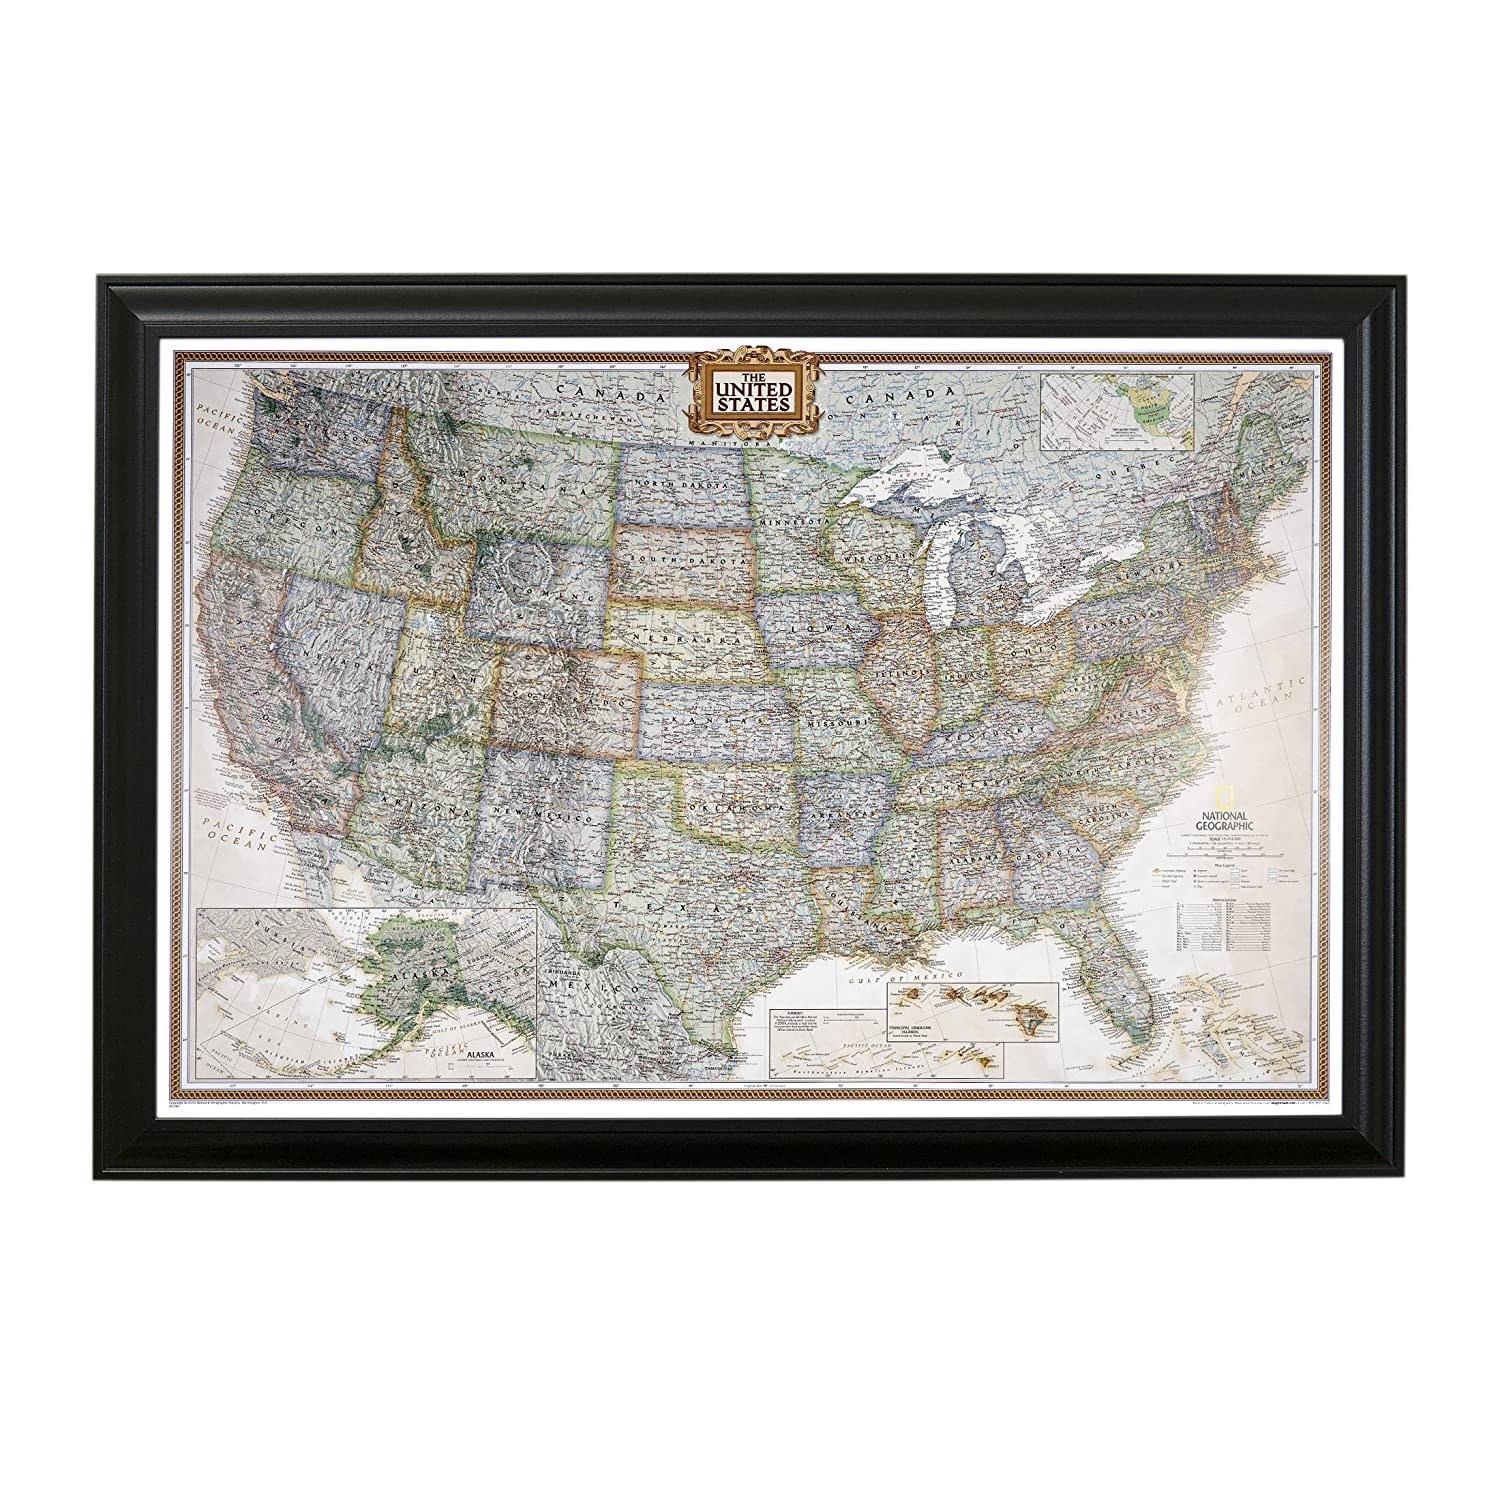 Amazoncom Executive US Push Pin Travel Map With Black Frame And - Us travel map push pin